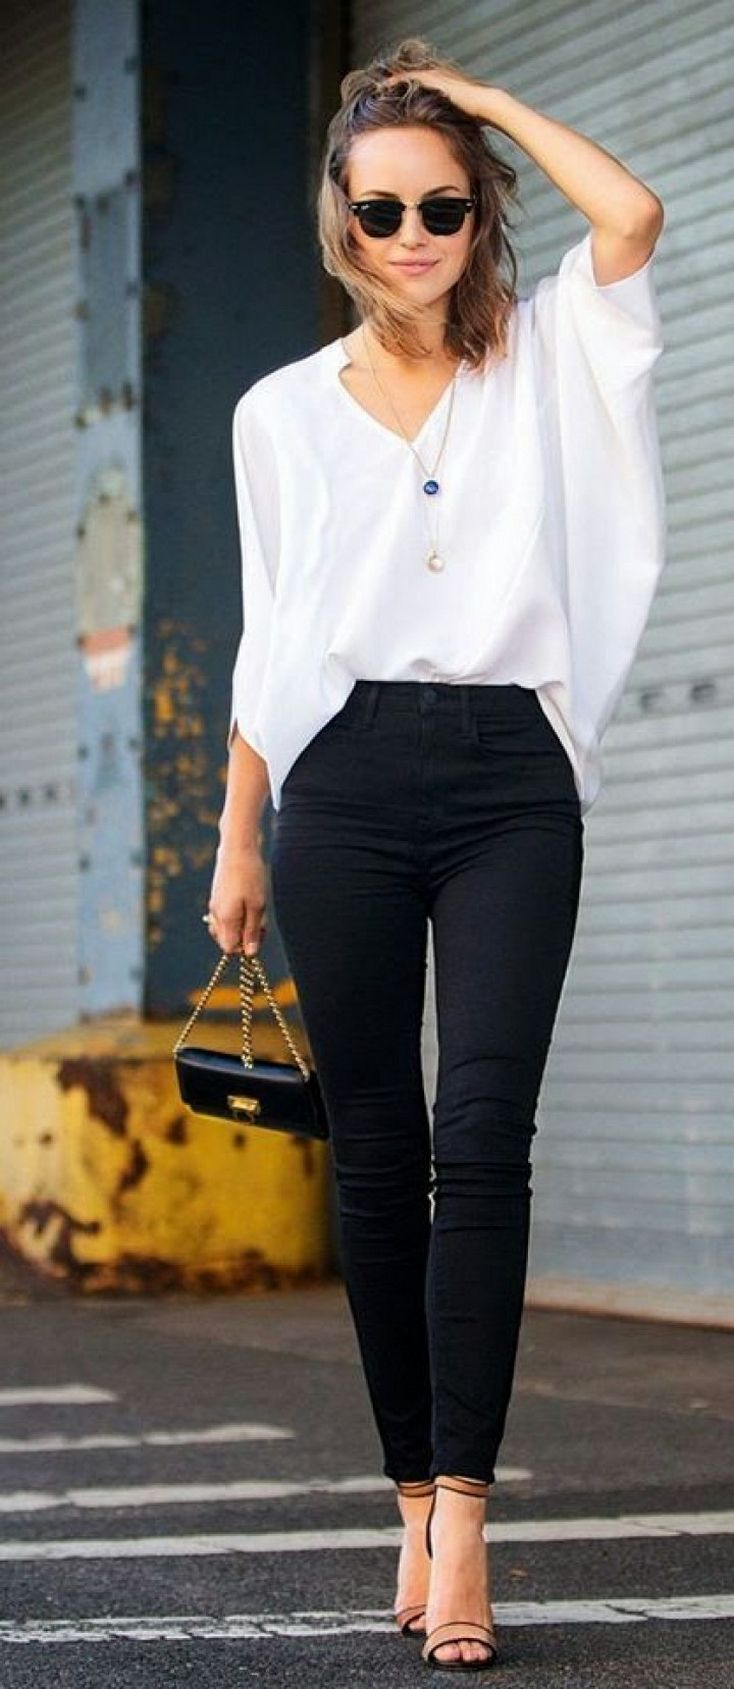 Looking Stylish With Business Meeting Outfit : 100+ Ideas https://femaline.com/2017/04/16/looking-stylish-with-business-meeting-outfit-100-ideas/